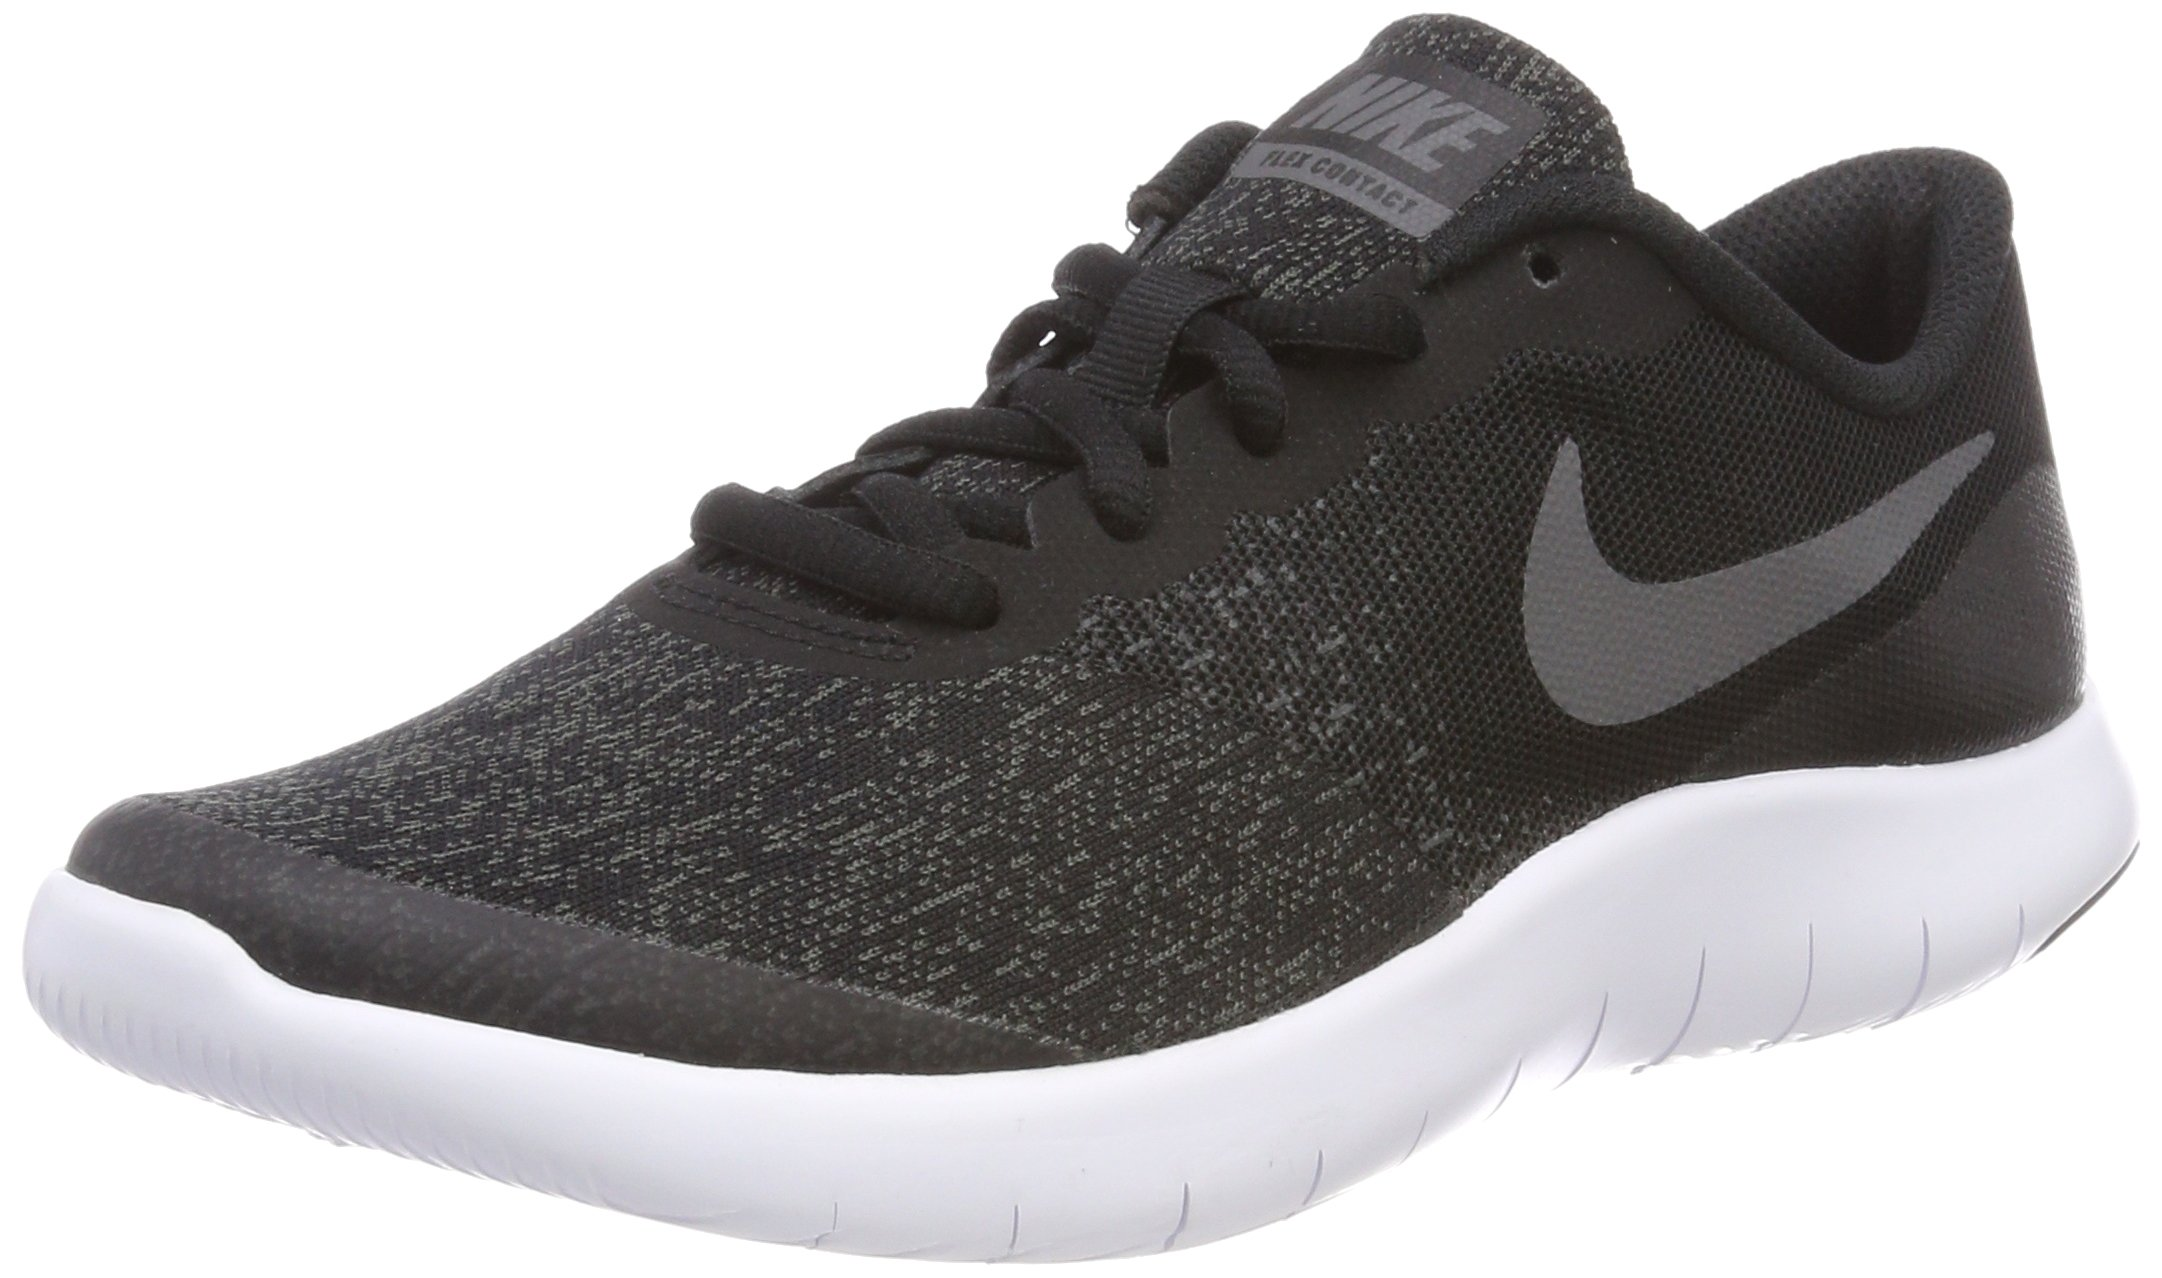 Nike Kids Flex Contact (GS) Black/Dark Grey/Anthracite Running Shoe 5.5 Kids US by Nike